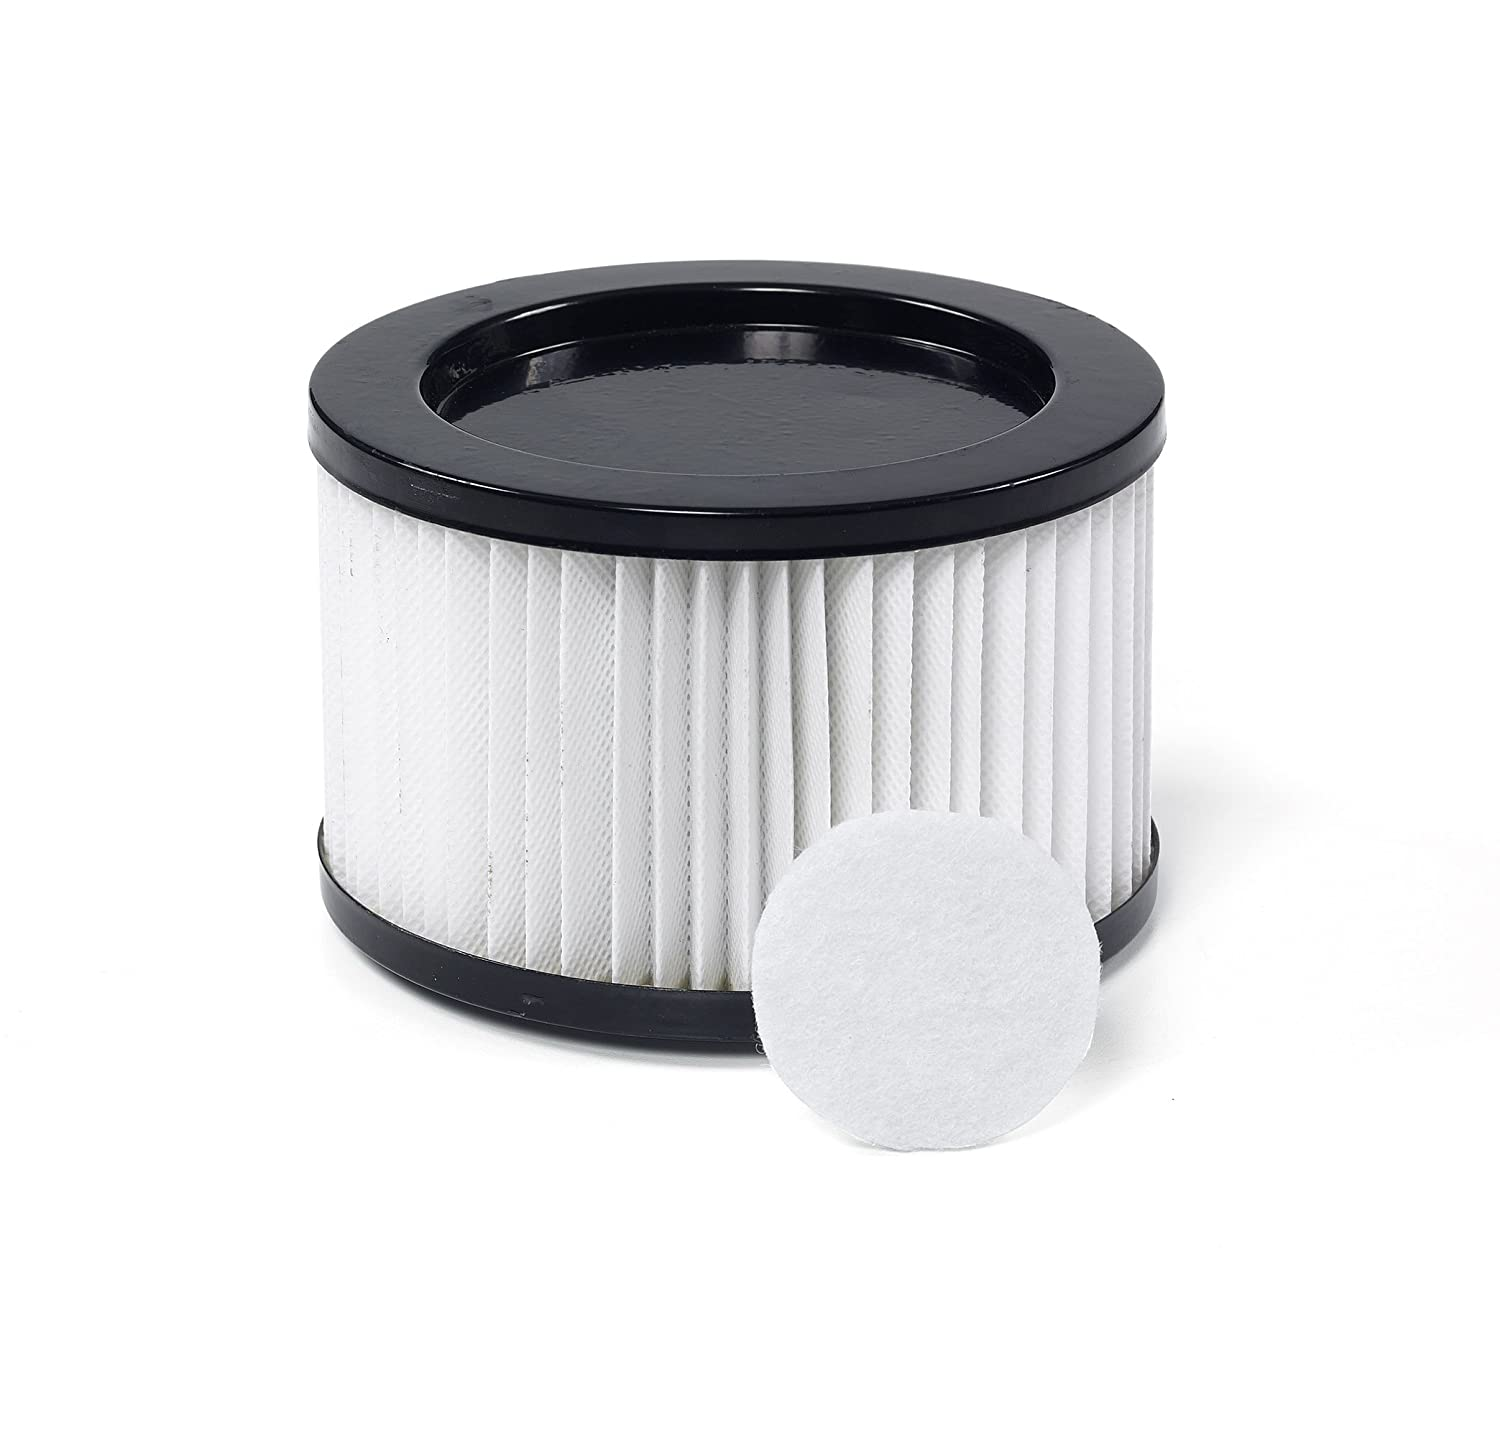 WORKSHOP Wet Dry Vacs Vacuum Filter WS15050F HEPA Media Filter for WS0500ASH Ash Vacuum Emerson Tool Company